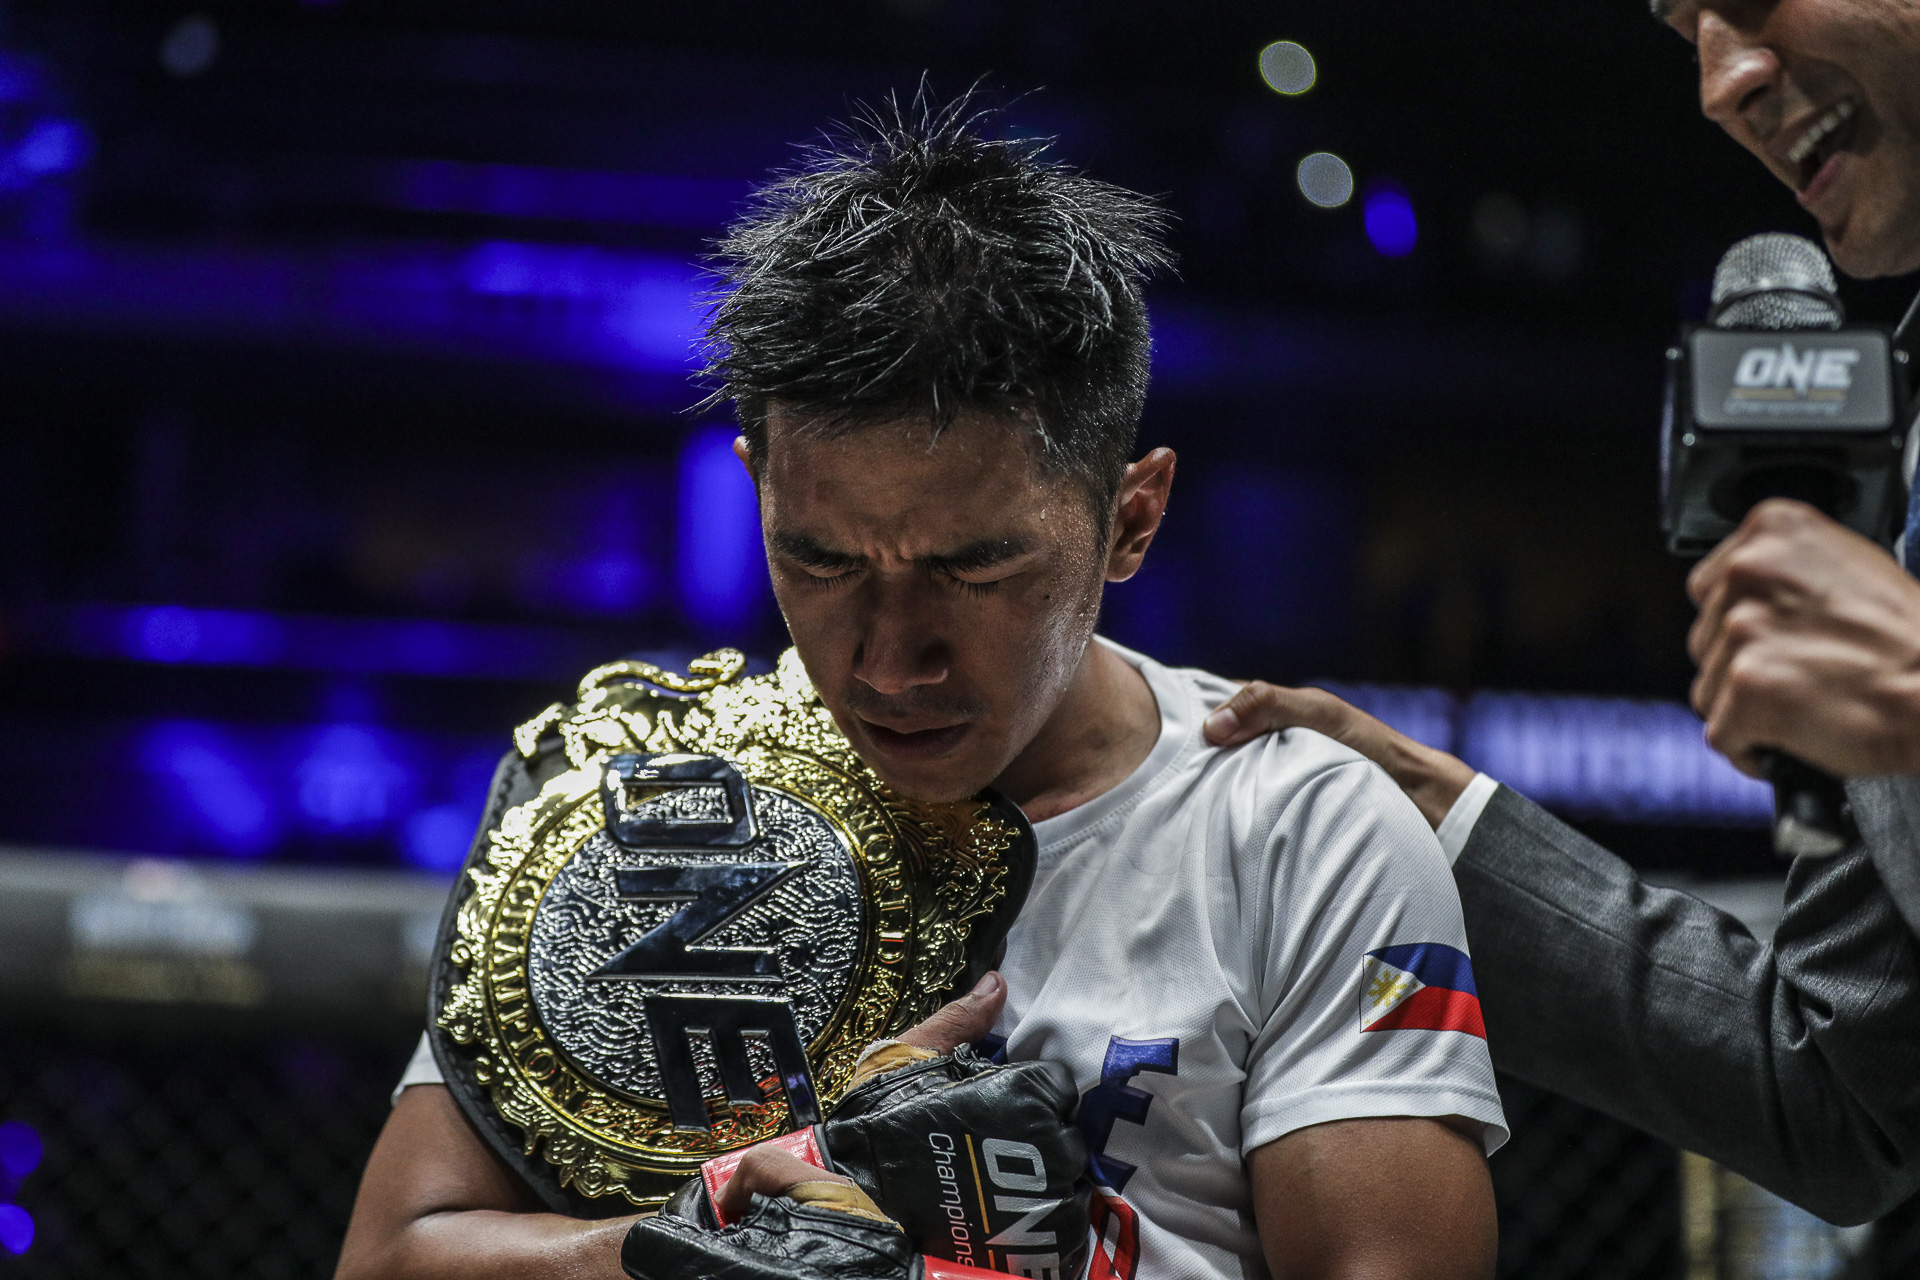 Geje Eustaquio winning the ONE Championship interim Flyweight World Championship in Manila, Phillipines on 28th Jan 2018